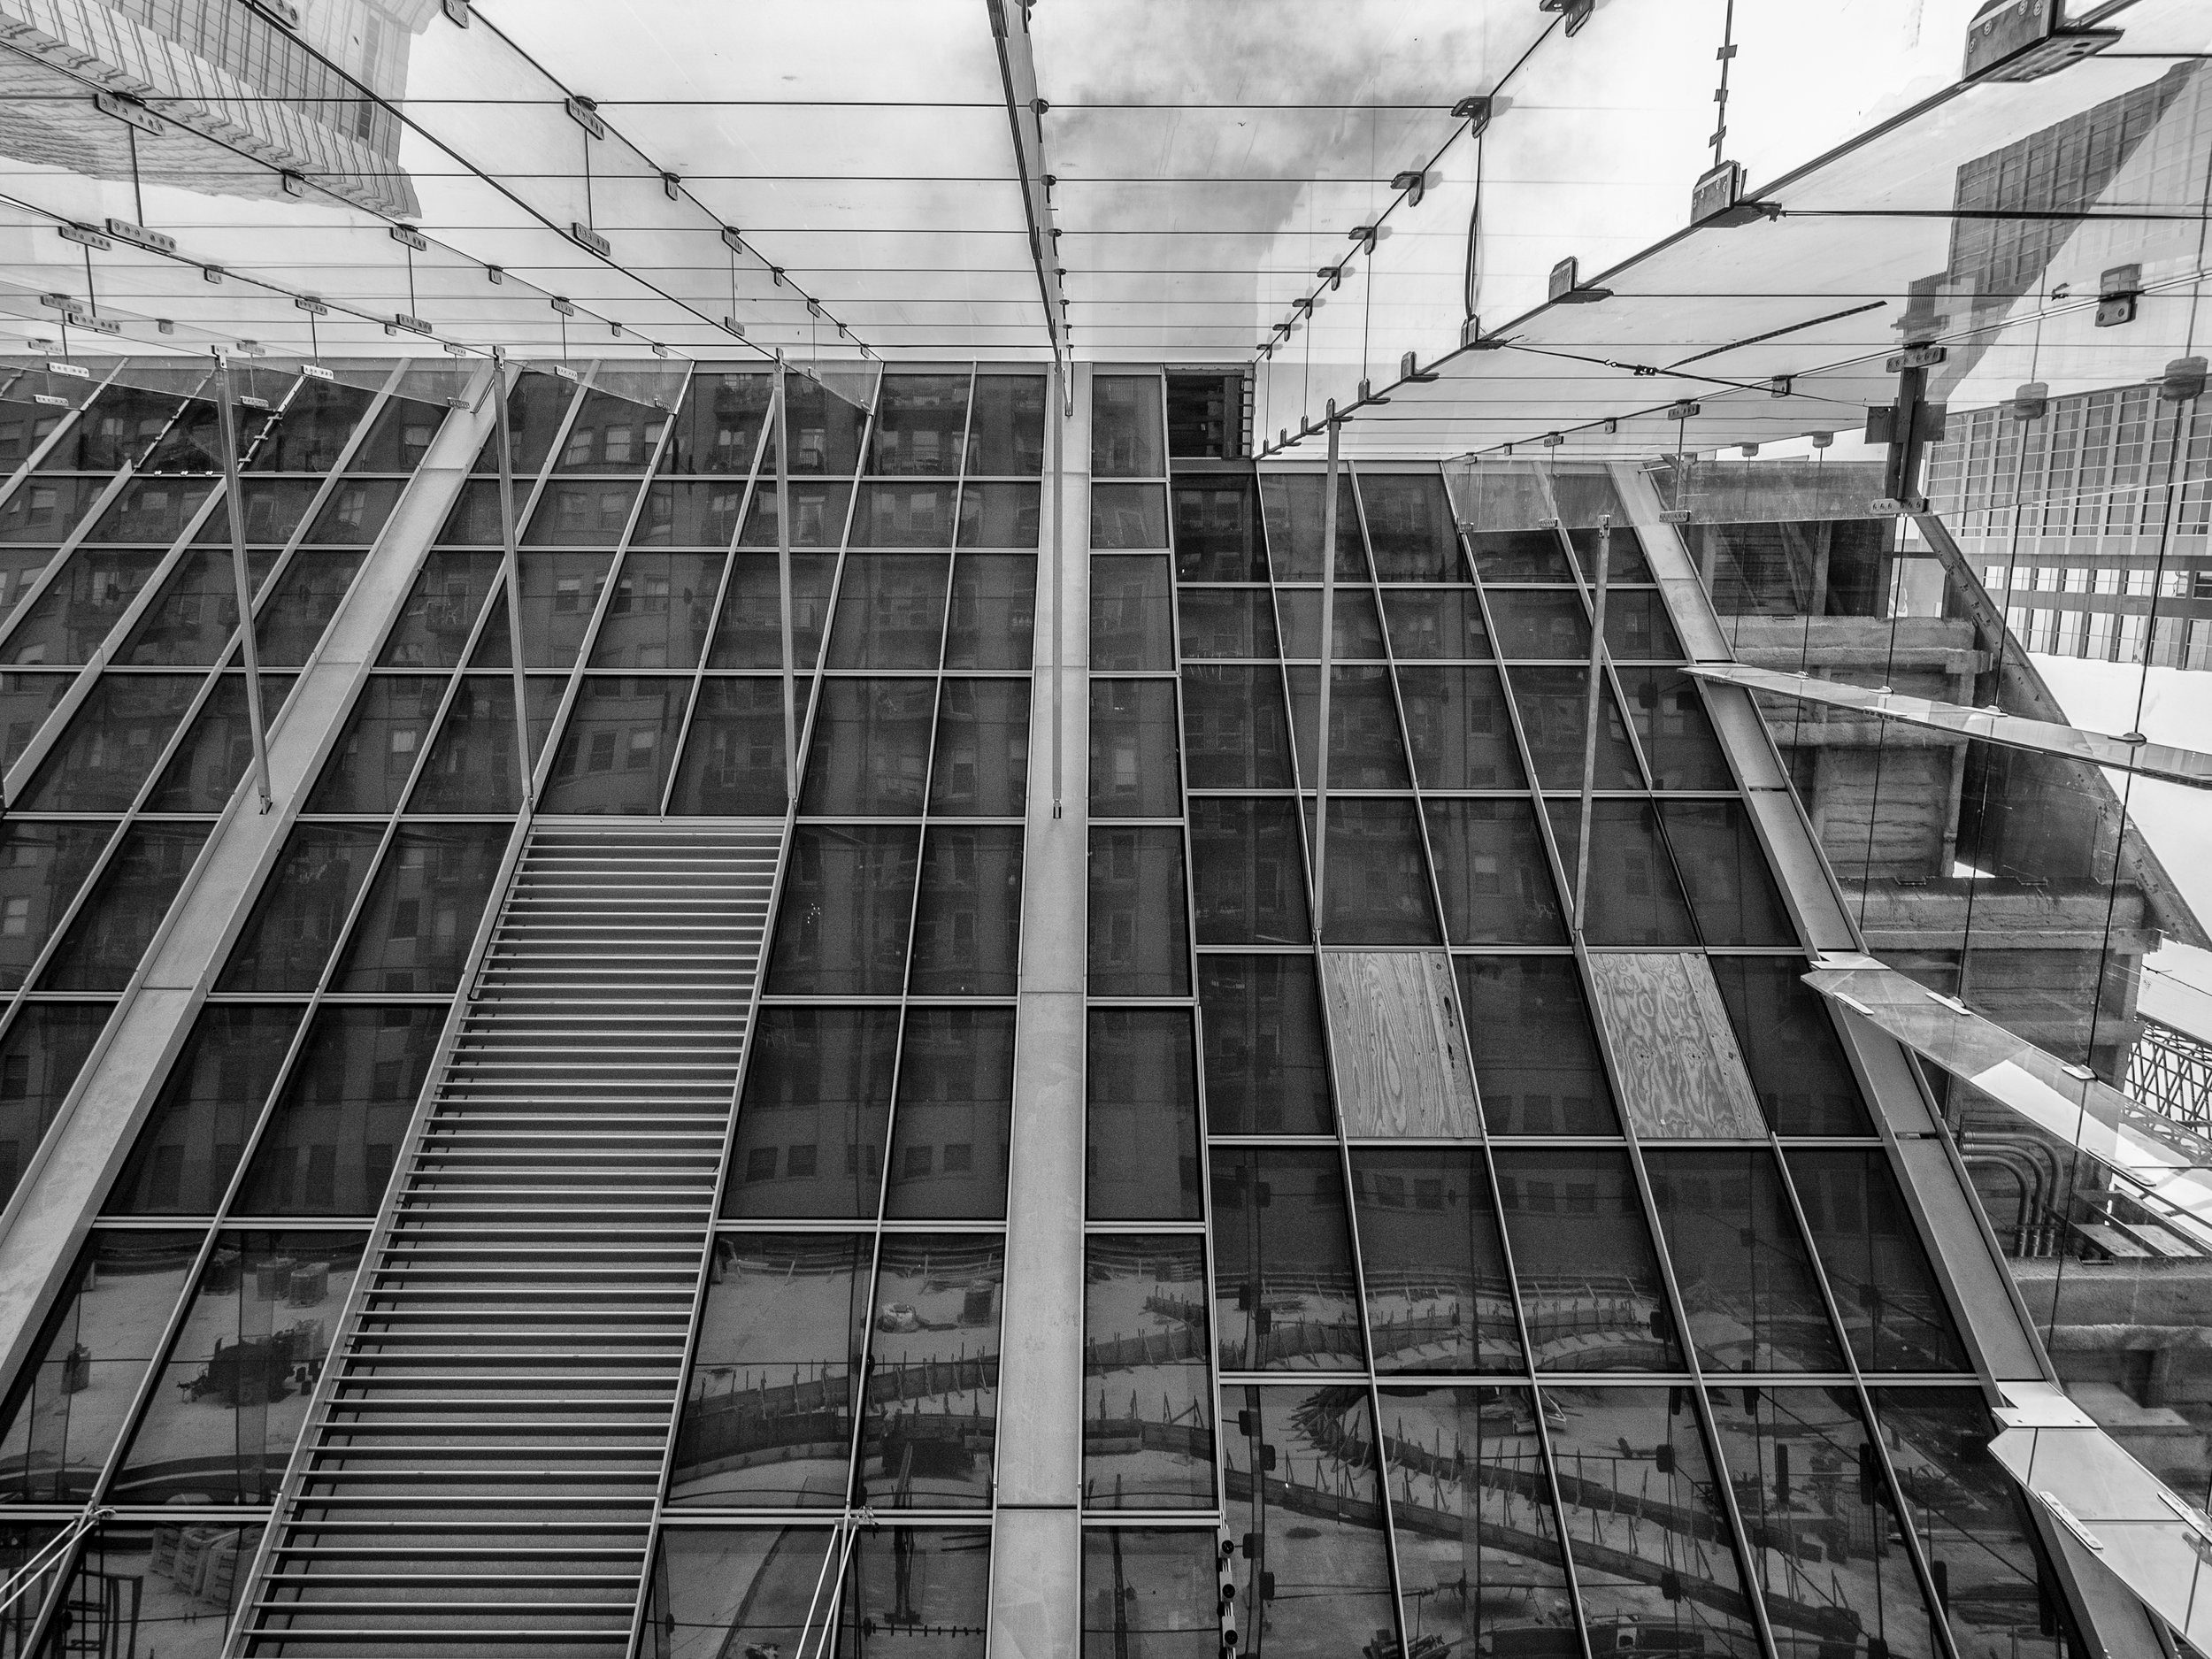 Reflection looking up from the lobby space- can see the landscape reflected from the angled surface